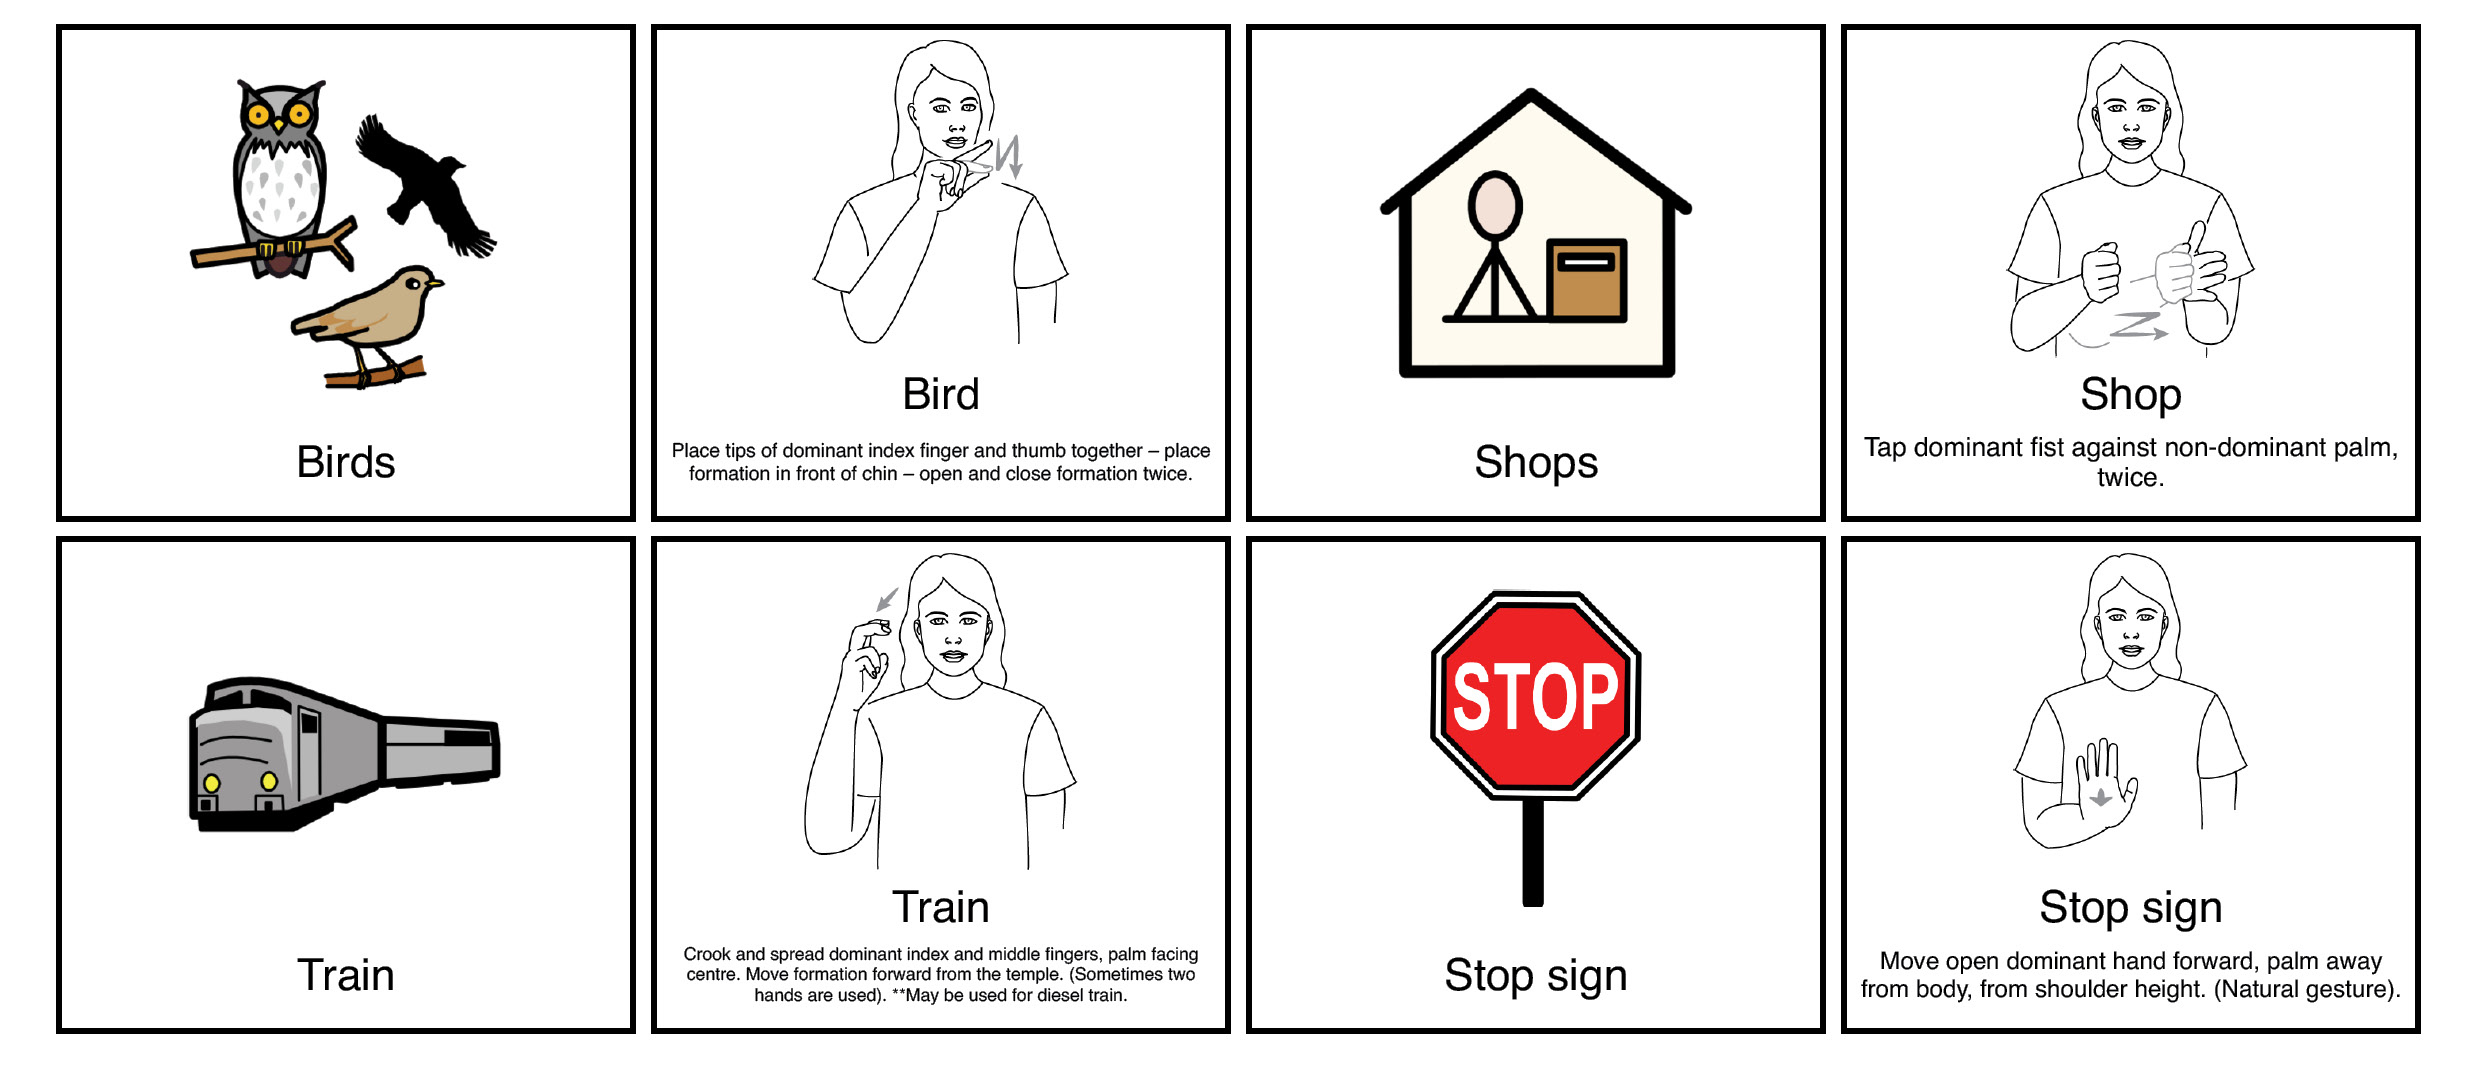 Key word sign board fot bird, train and stop sign